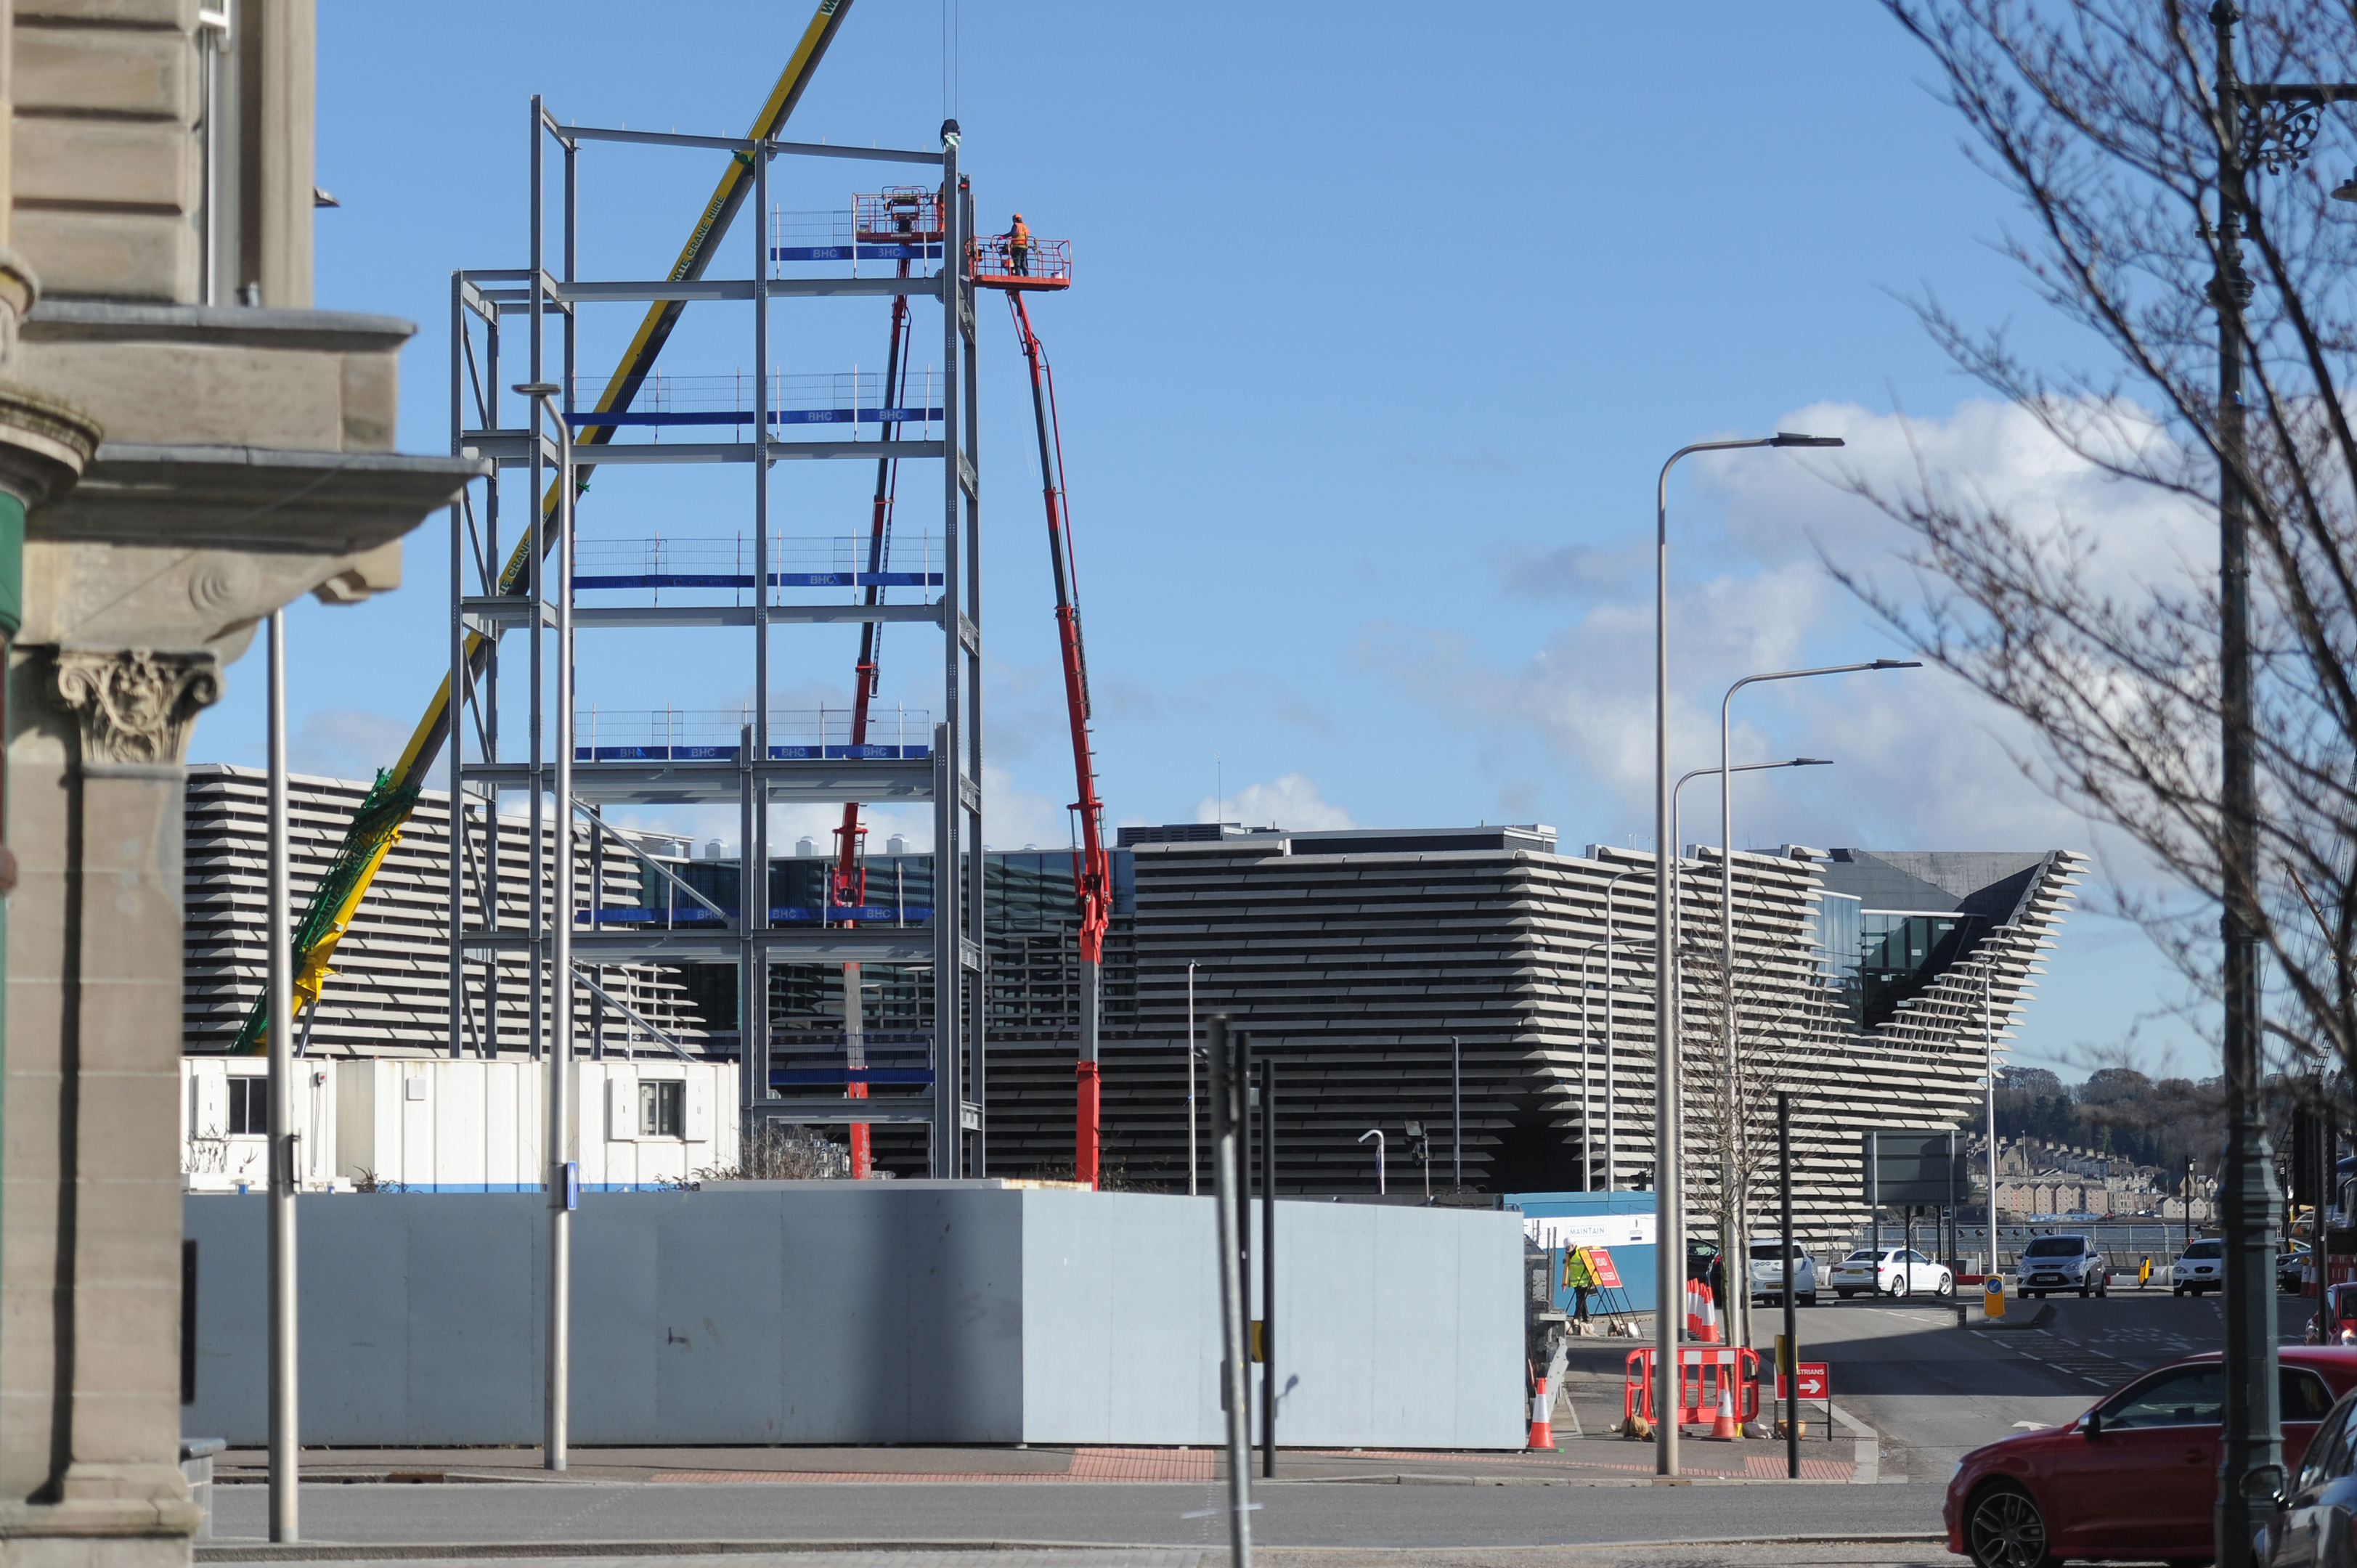 Work has begun on the office block, which obscures views of the V&A museum from parts of the city centre.